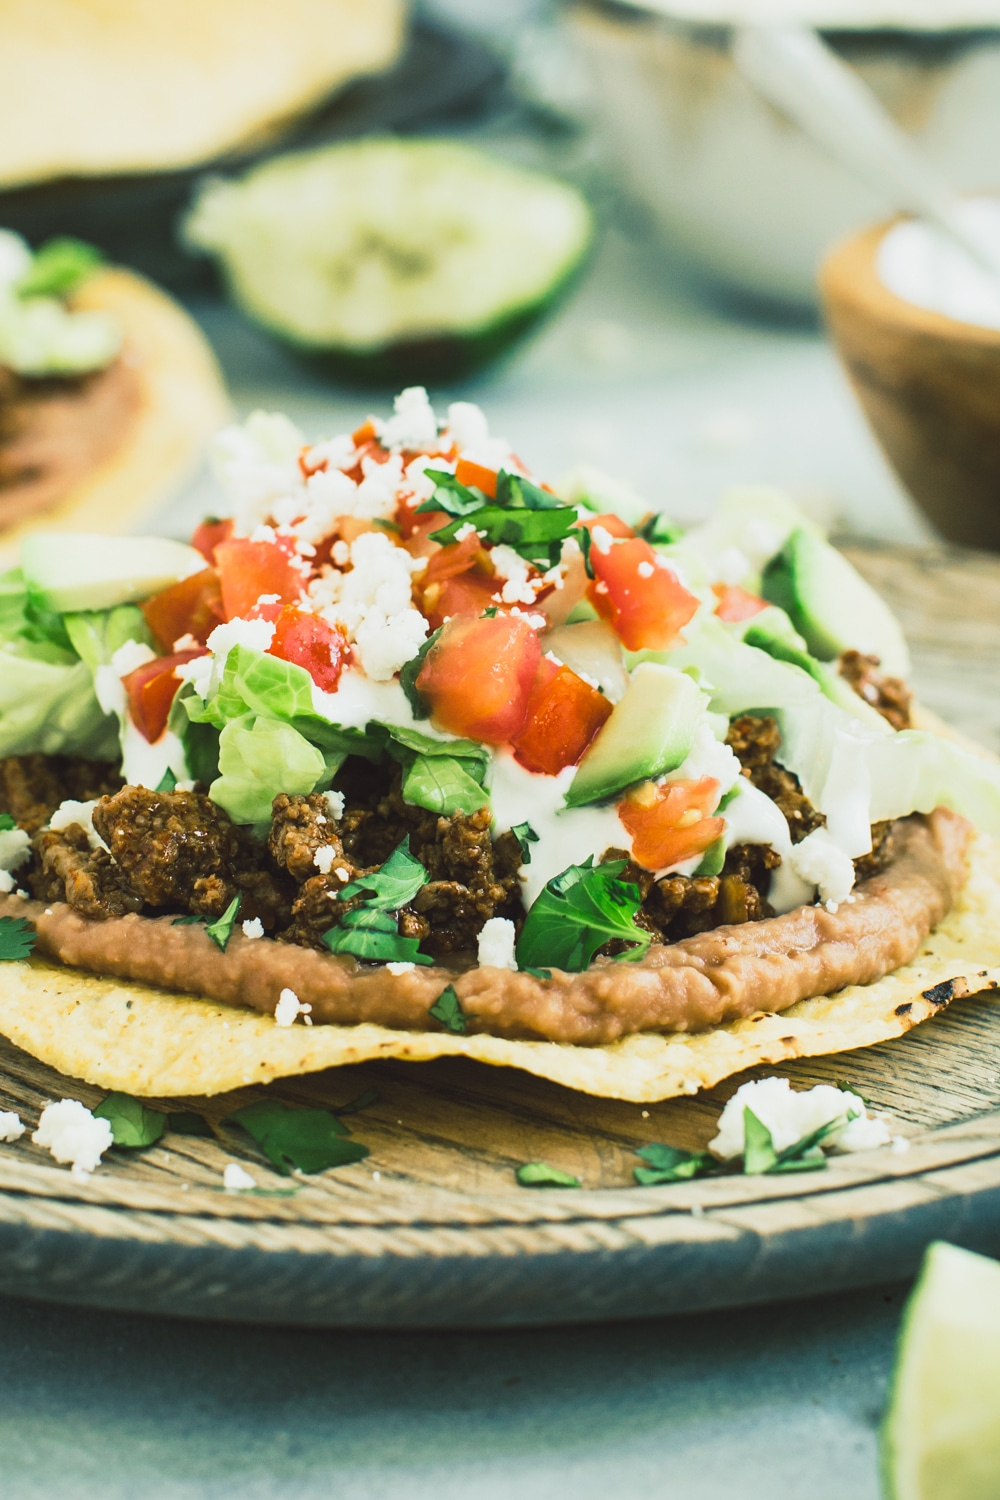 Ground beef tostada with toppings of lettuce, tomato, and crumbled cheese on a wooden plate.